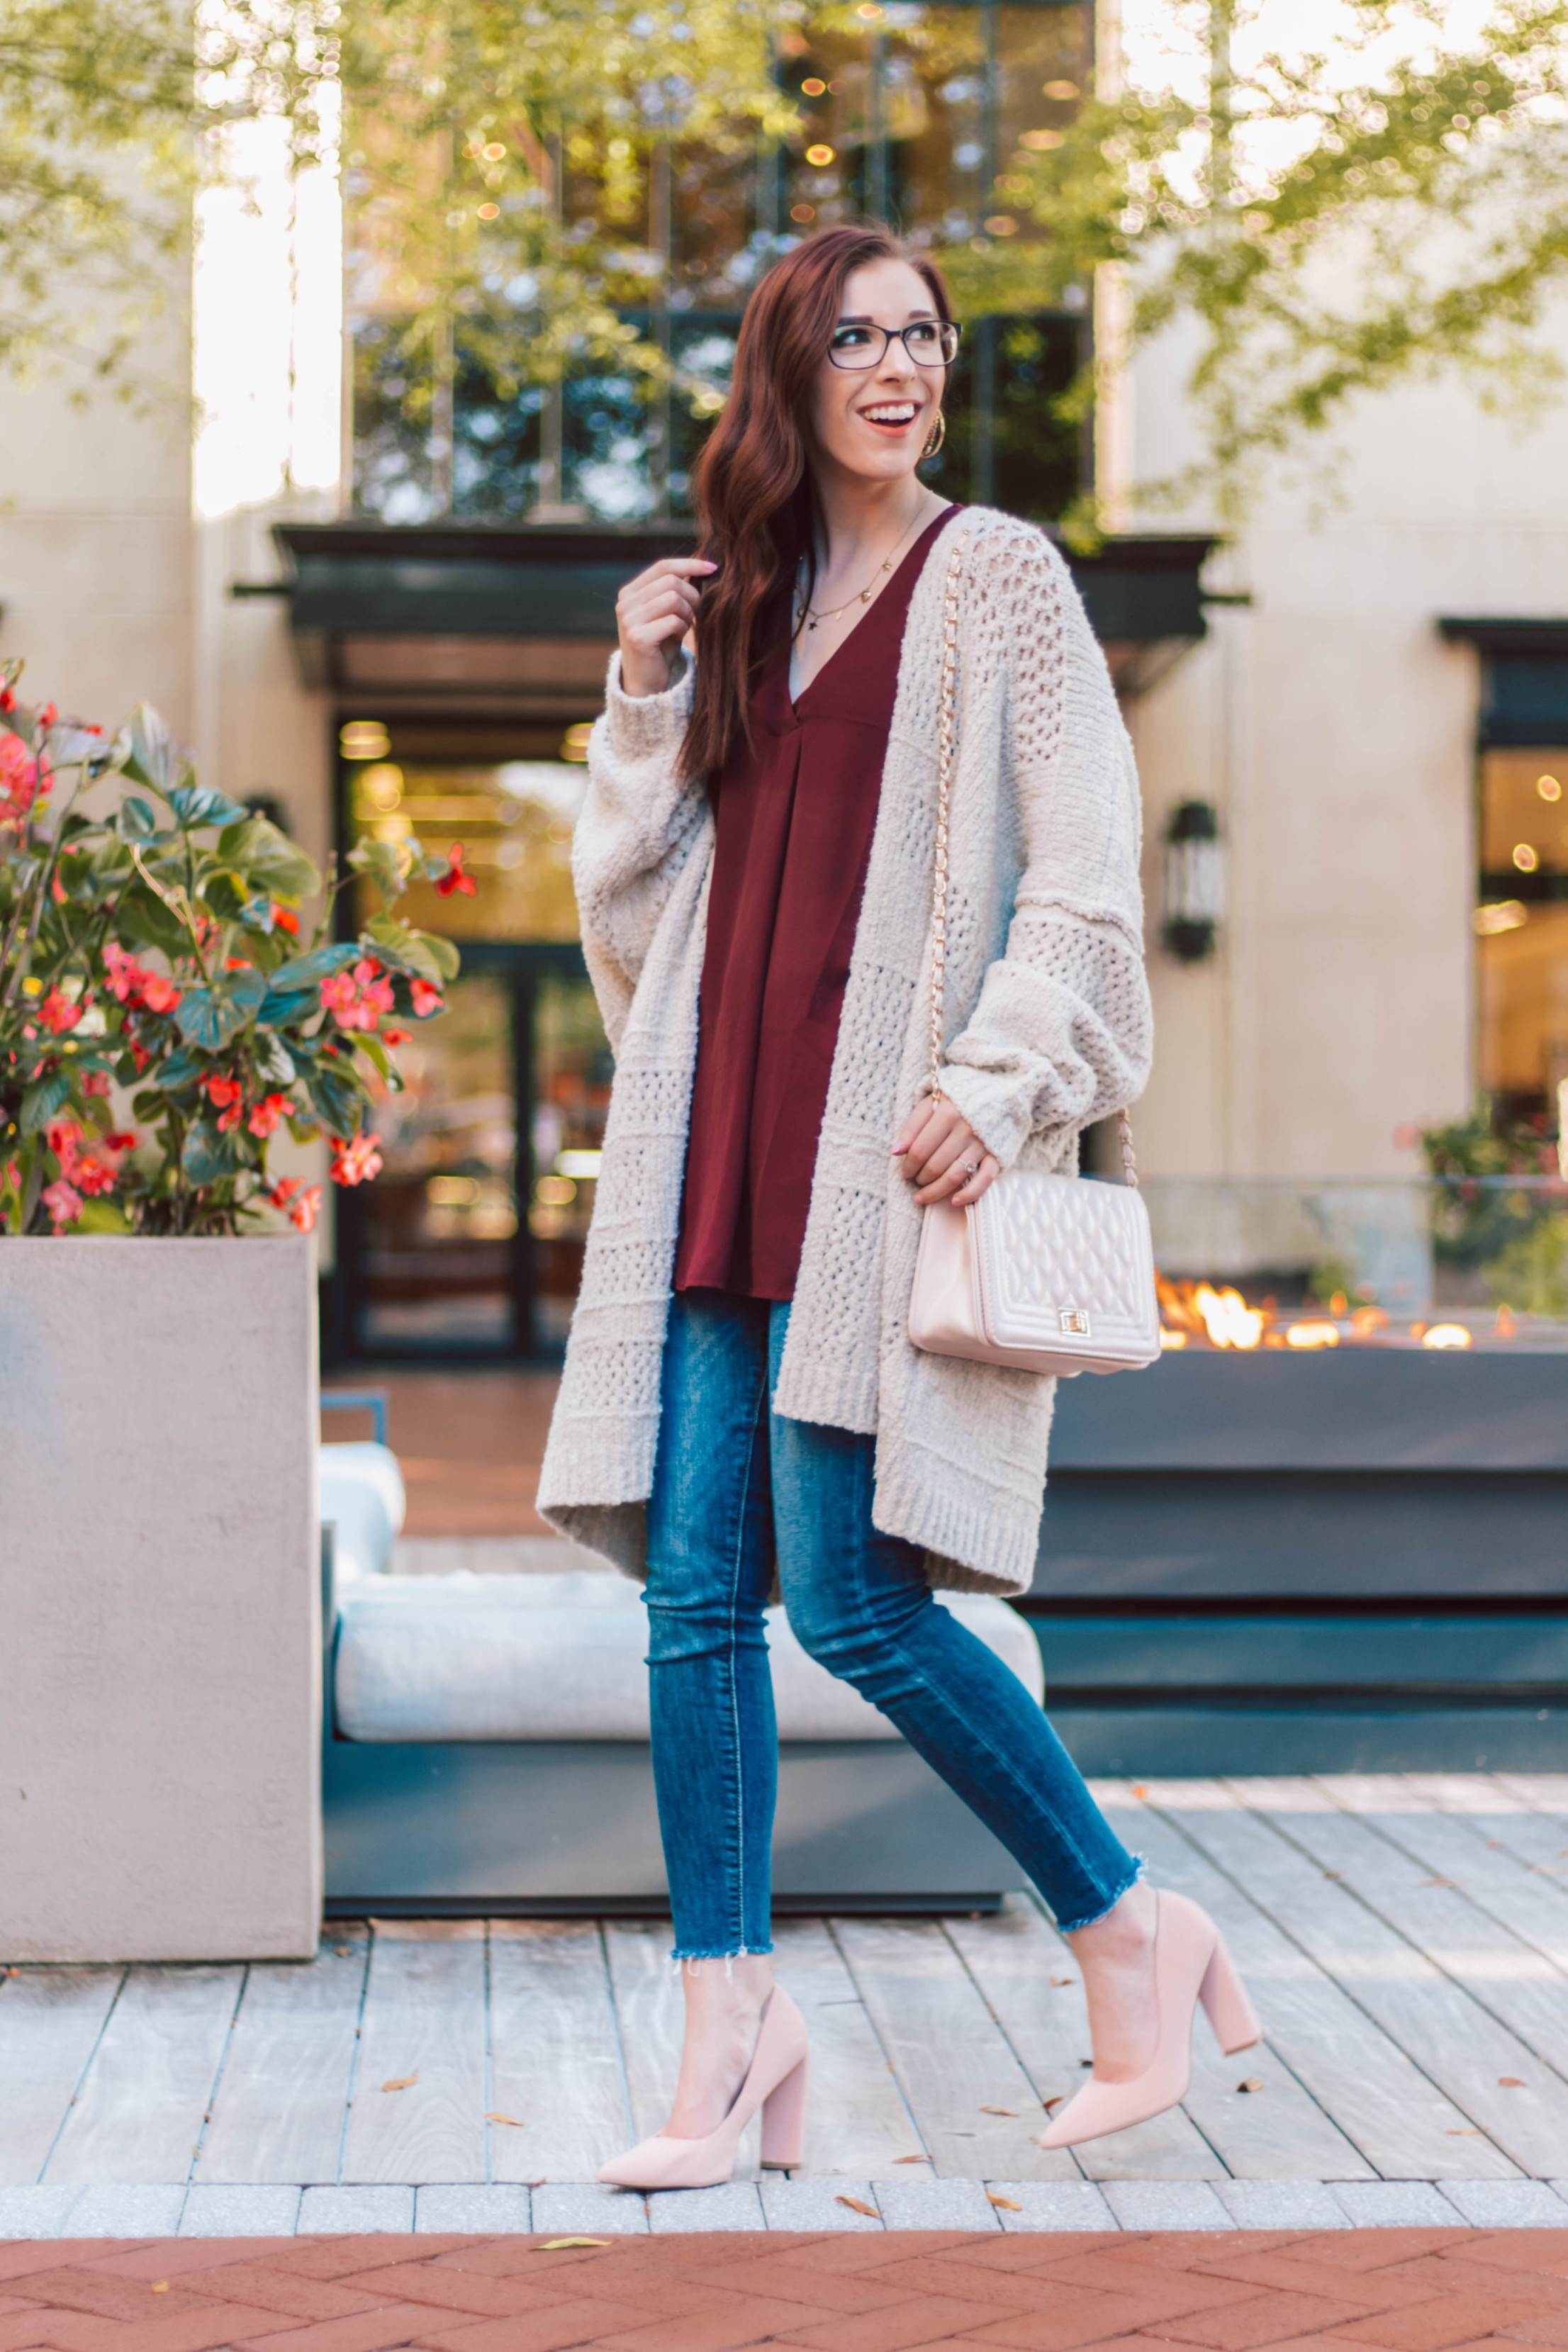 The Coziest Casual Valentine's Day Outfit